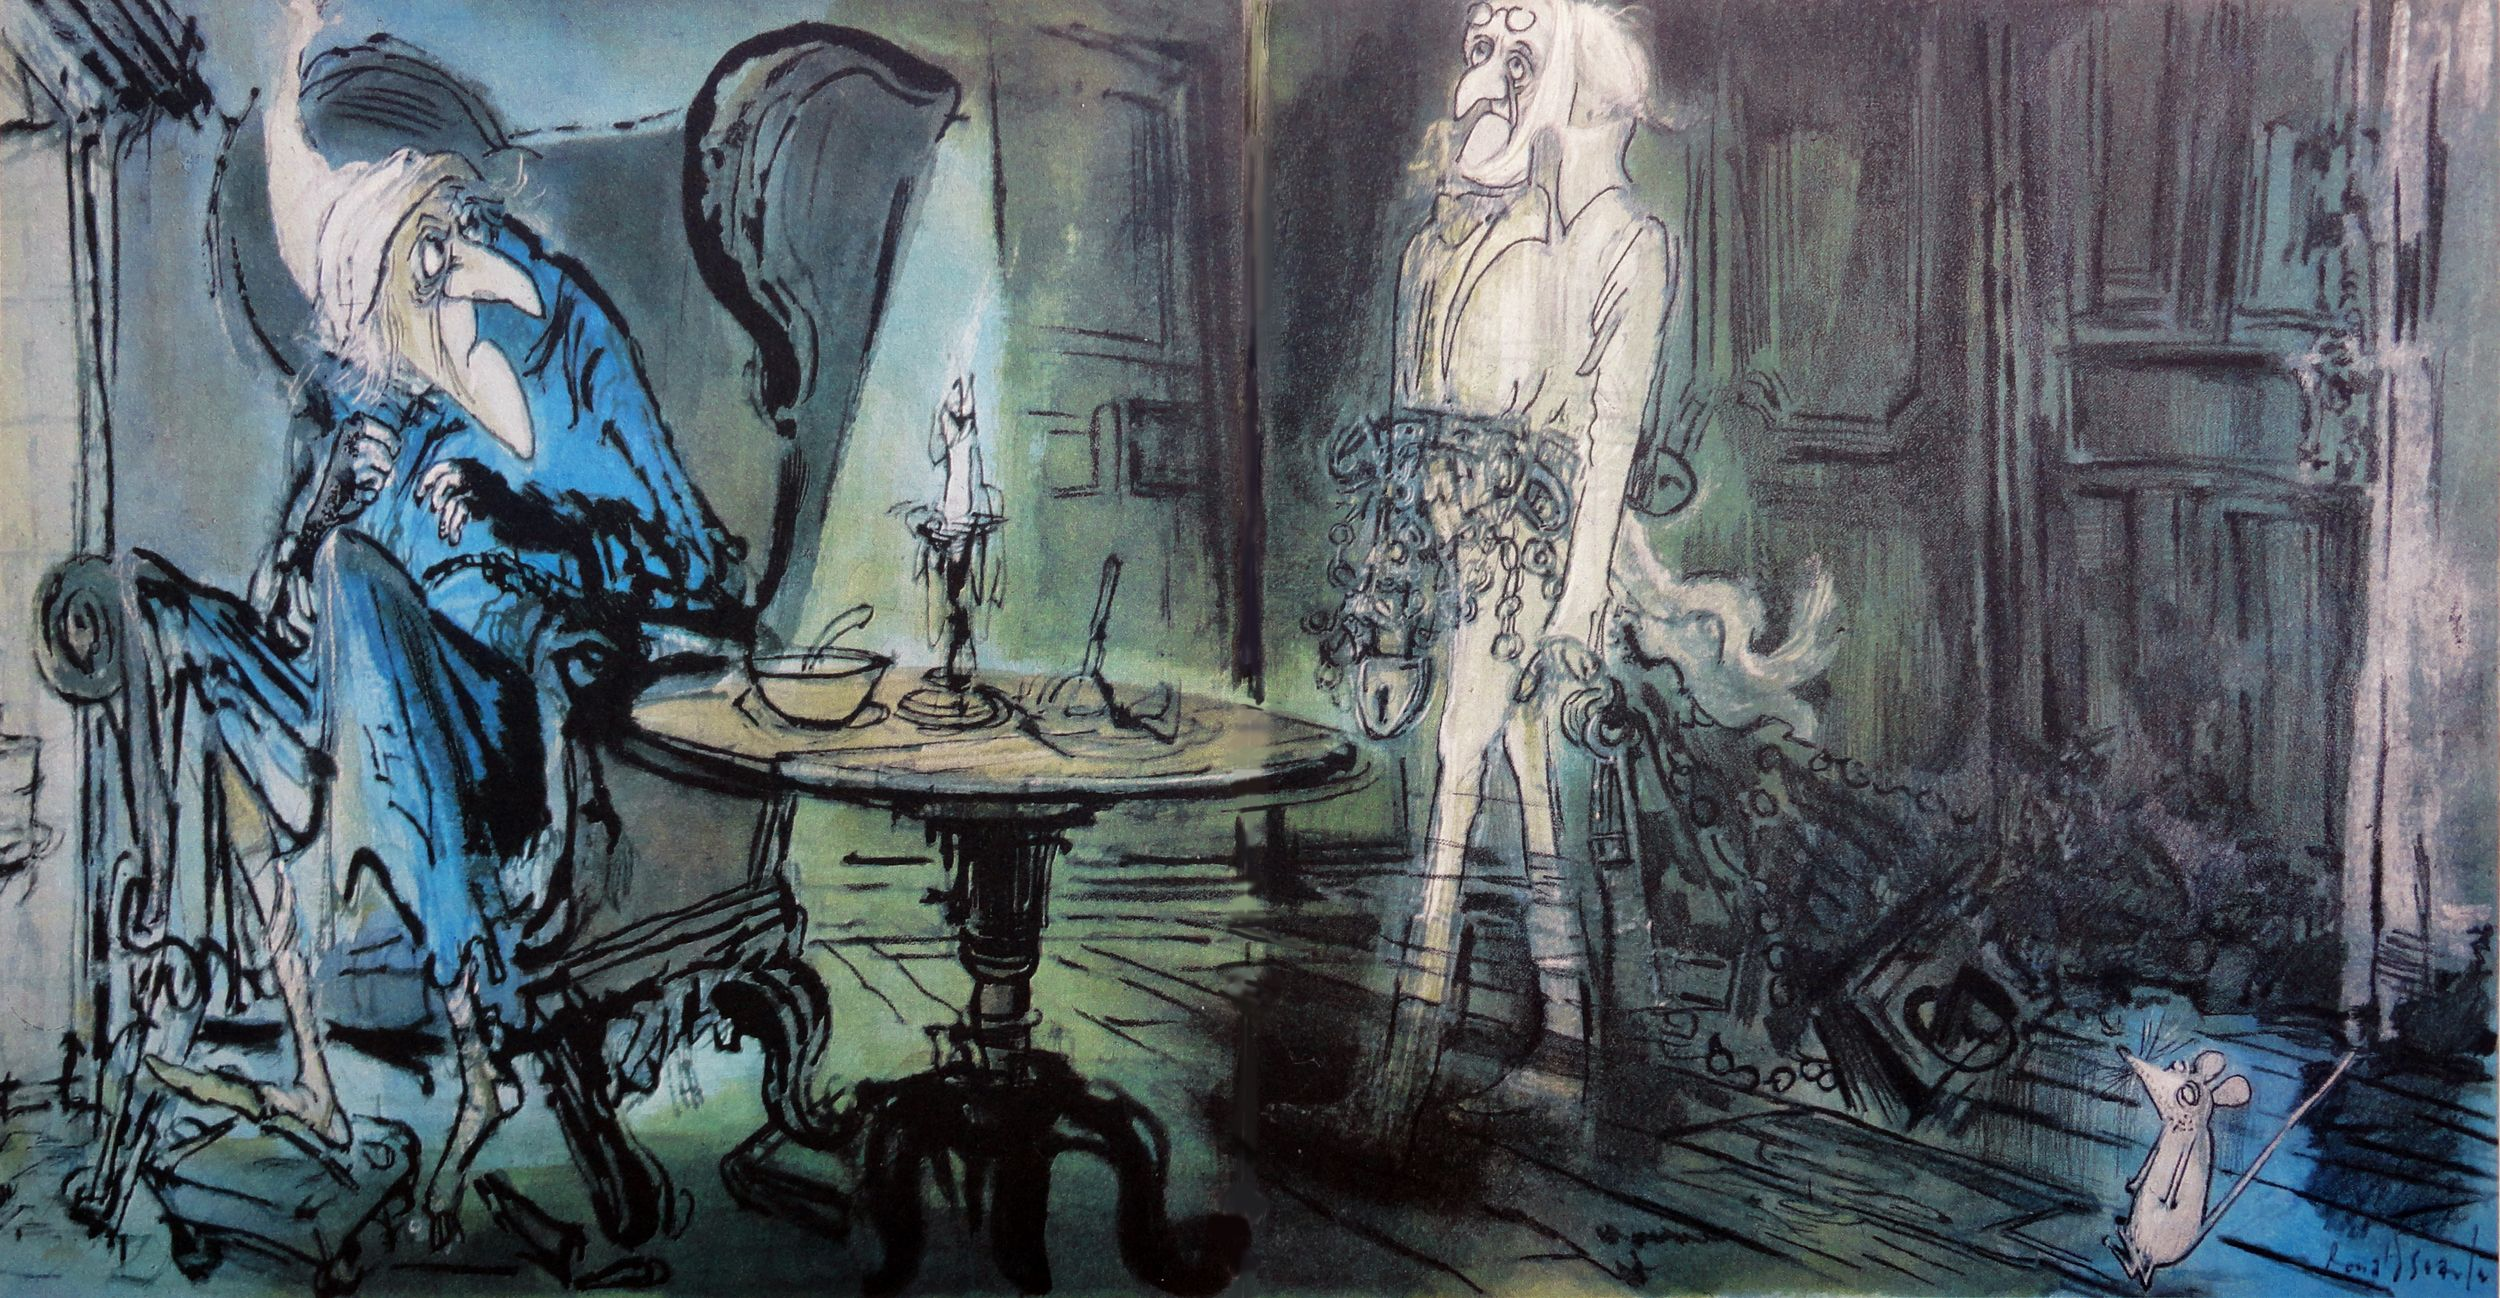 images of scrooge by ronald searle | ronald searle's christmas carol | One1more2time3's Weblog